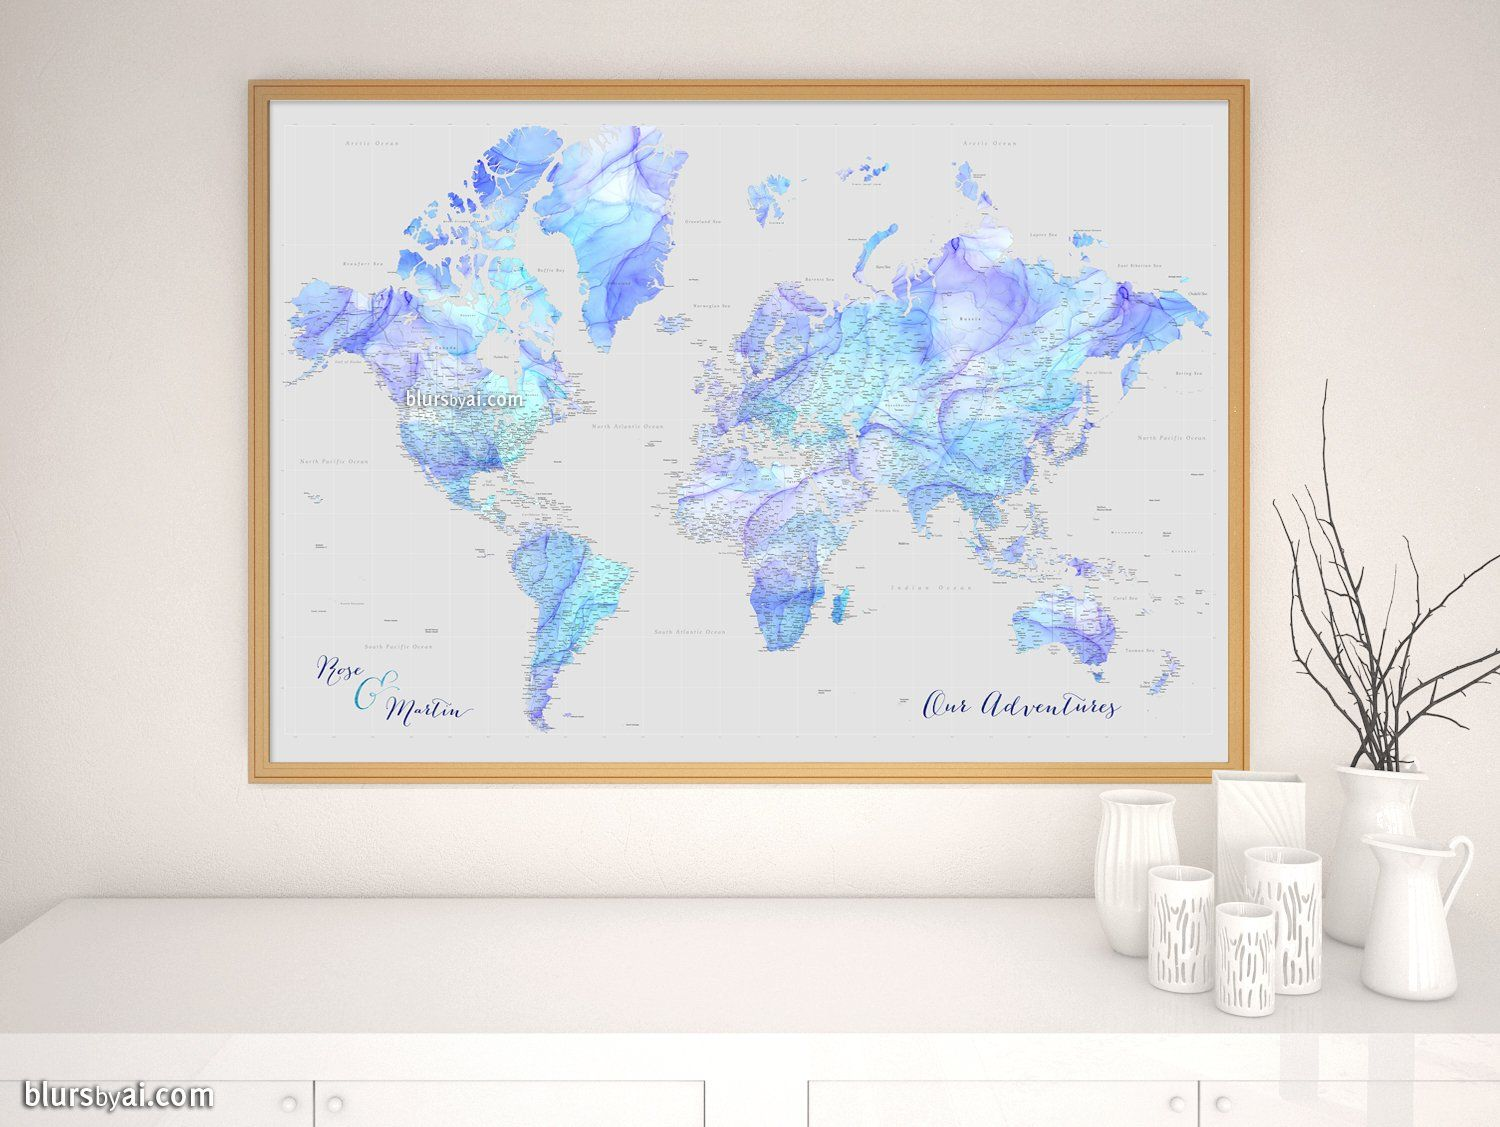 Custom world map print - highly detailed map with cities in ... on world map tester, world map costume, world map dresses, world map size, world map vintage, world map modern, world map business, world map gold, world map bedroom decor, world map retail, world map illustrator, world map cook, world map color, world map creator, world map sports, world map rain, world map photography, world map teacher, world map design, world map name,